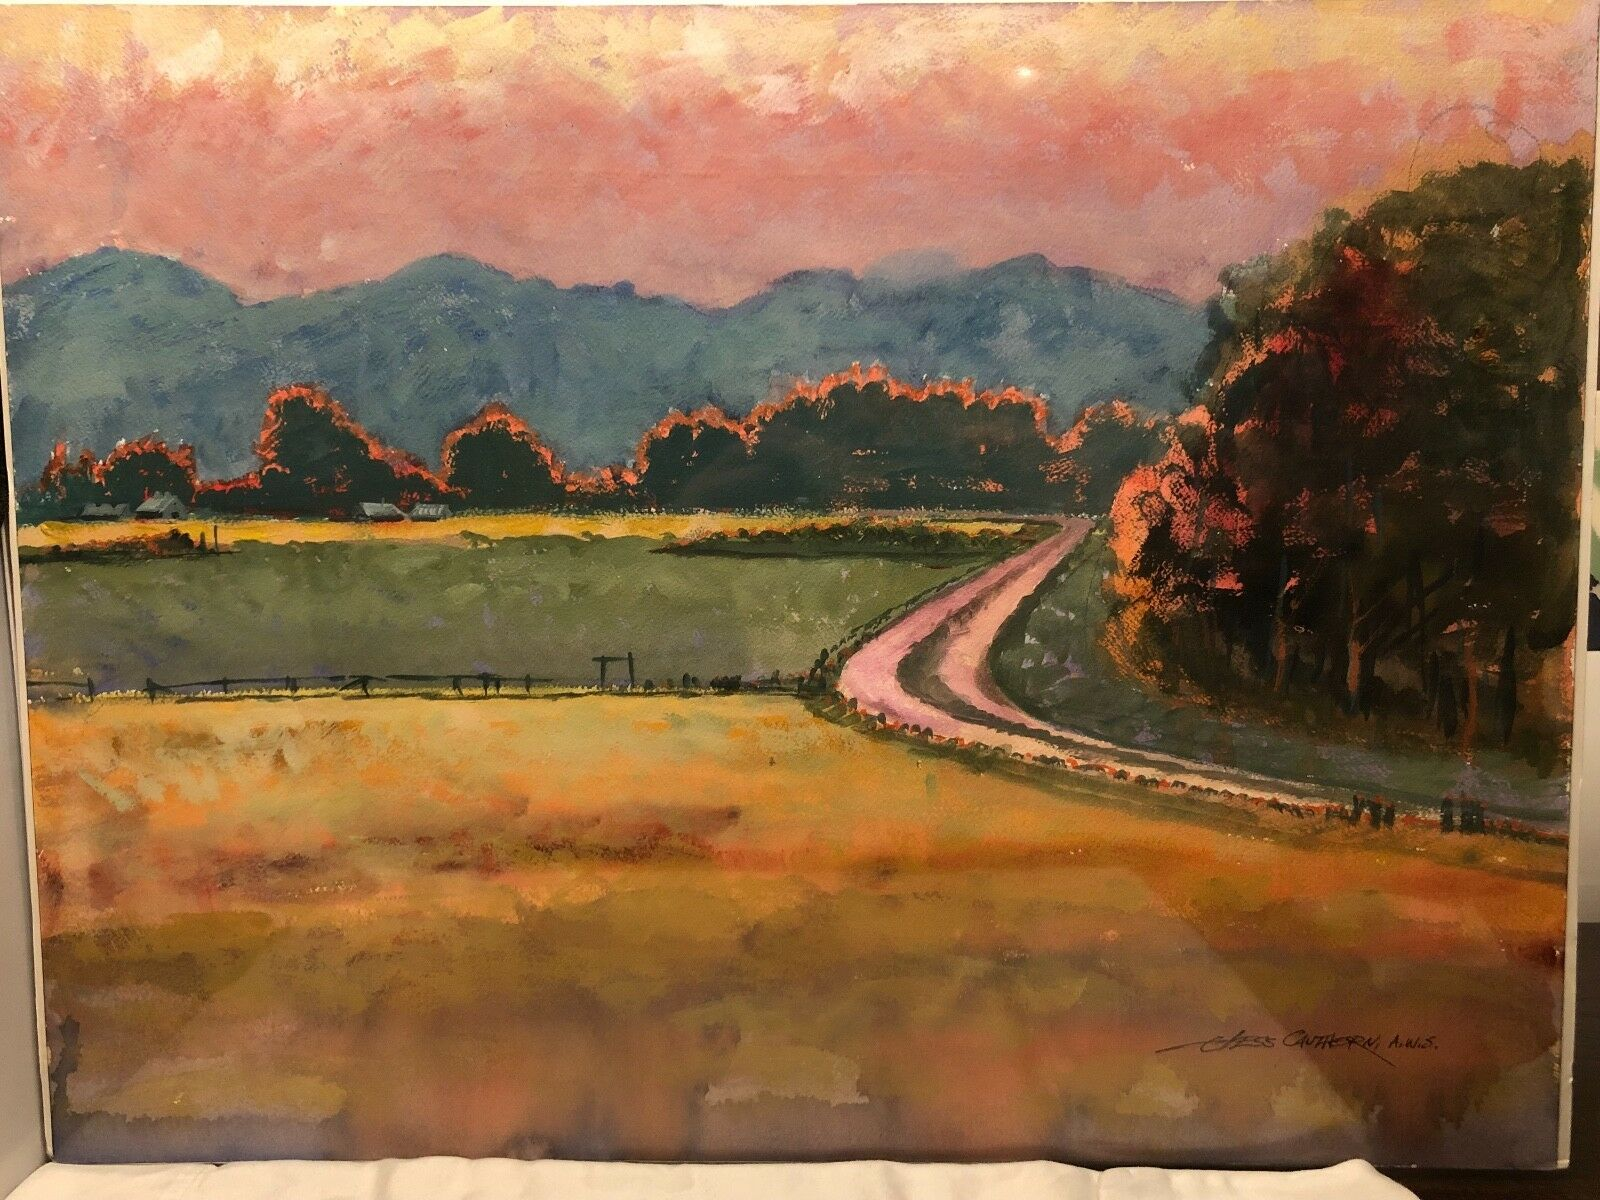 Jess Cauthorn AWS Watercolor,Signed on eBay thumbnail